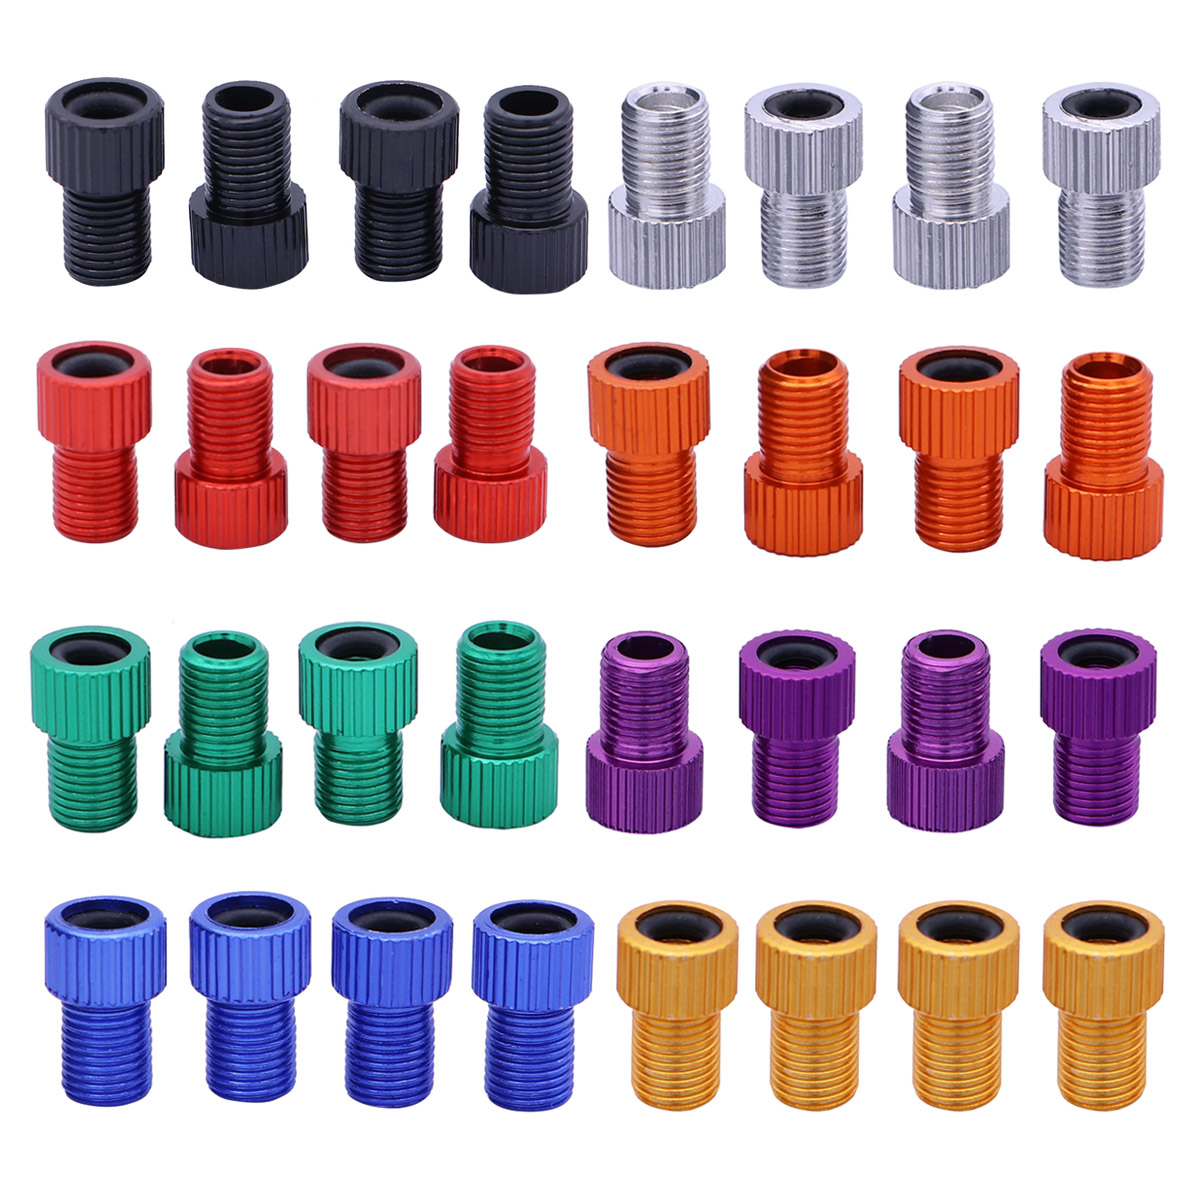 4 PCS Bicycle Aluminum Alloy French Presta To Schrader Valve Adapters Converters MTB Road Bike Mountain Bike Tube Pump